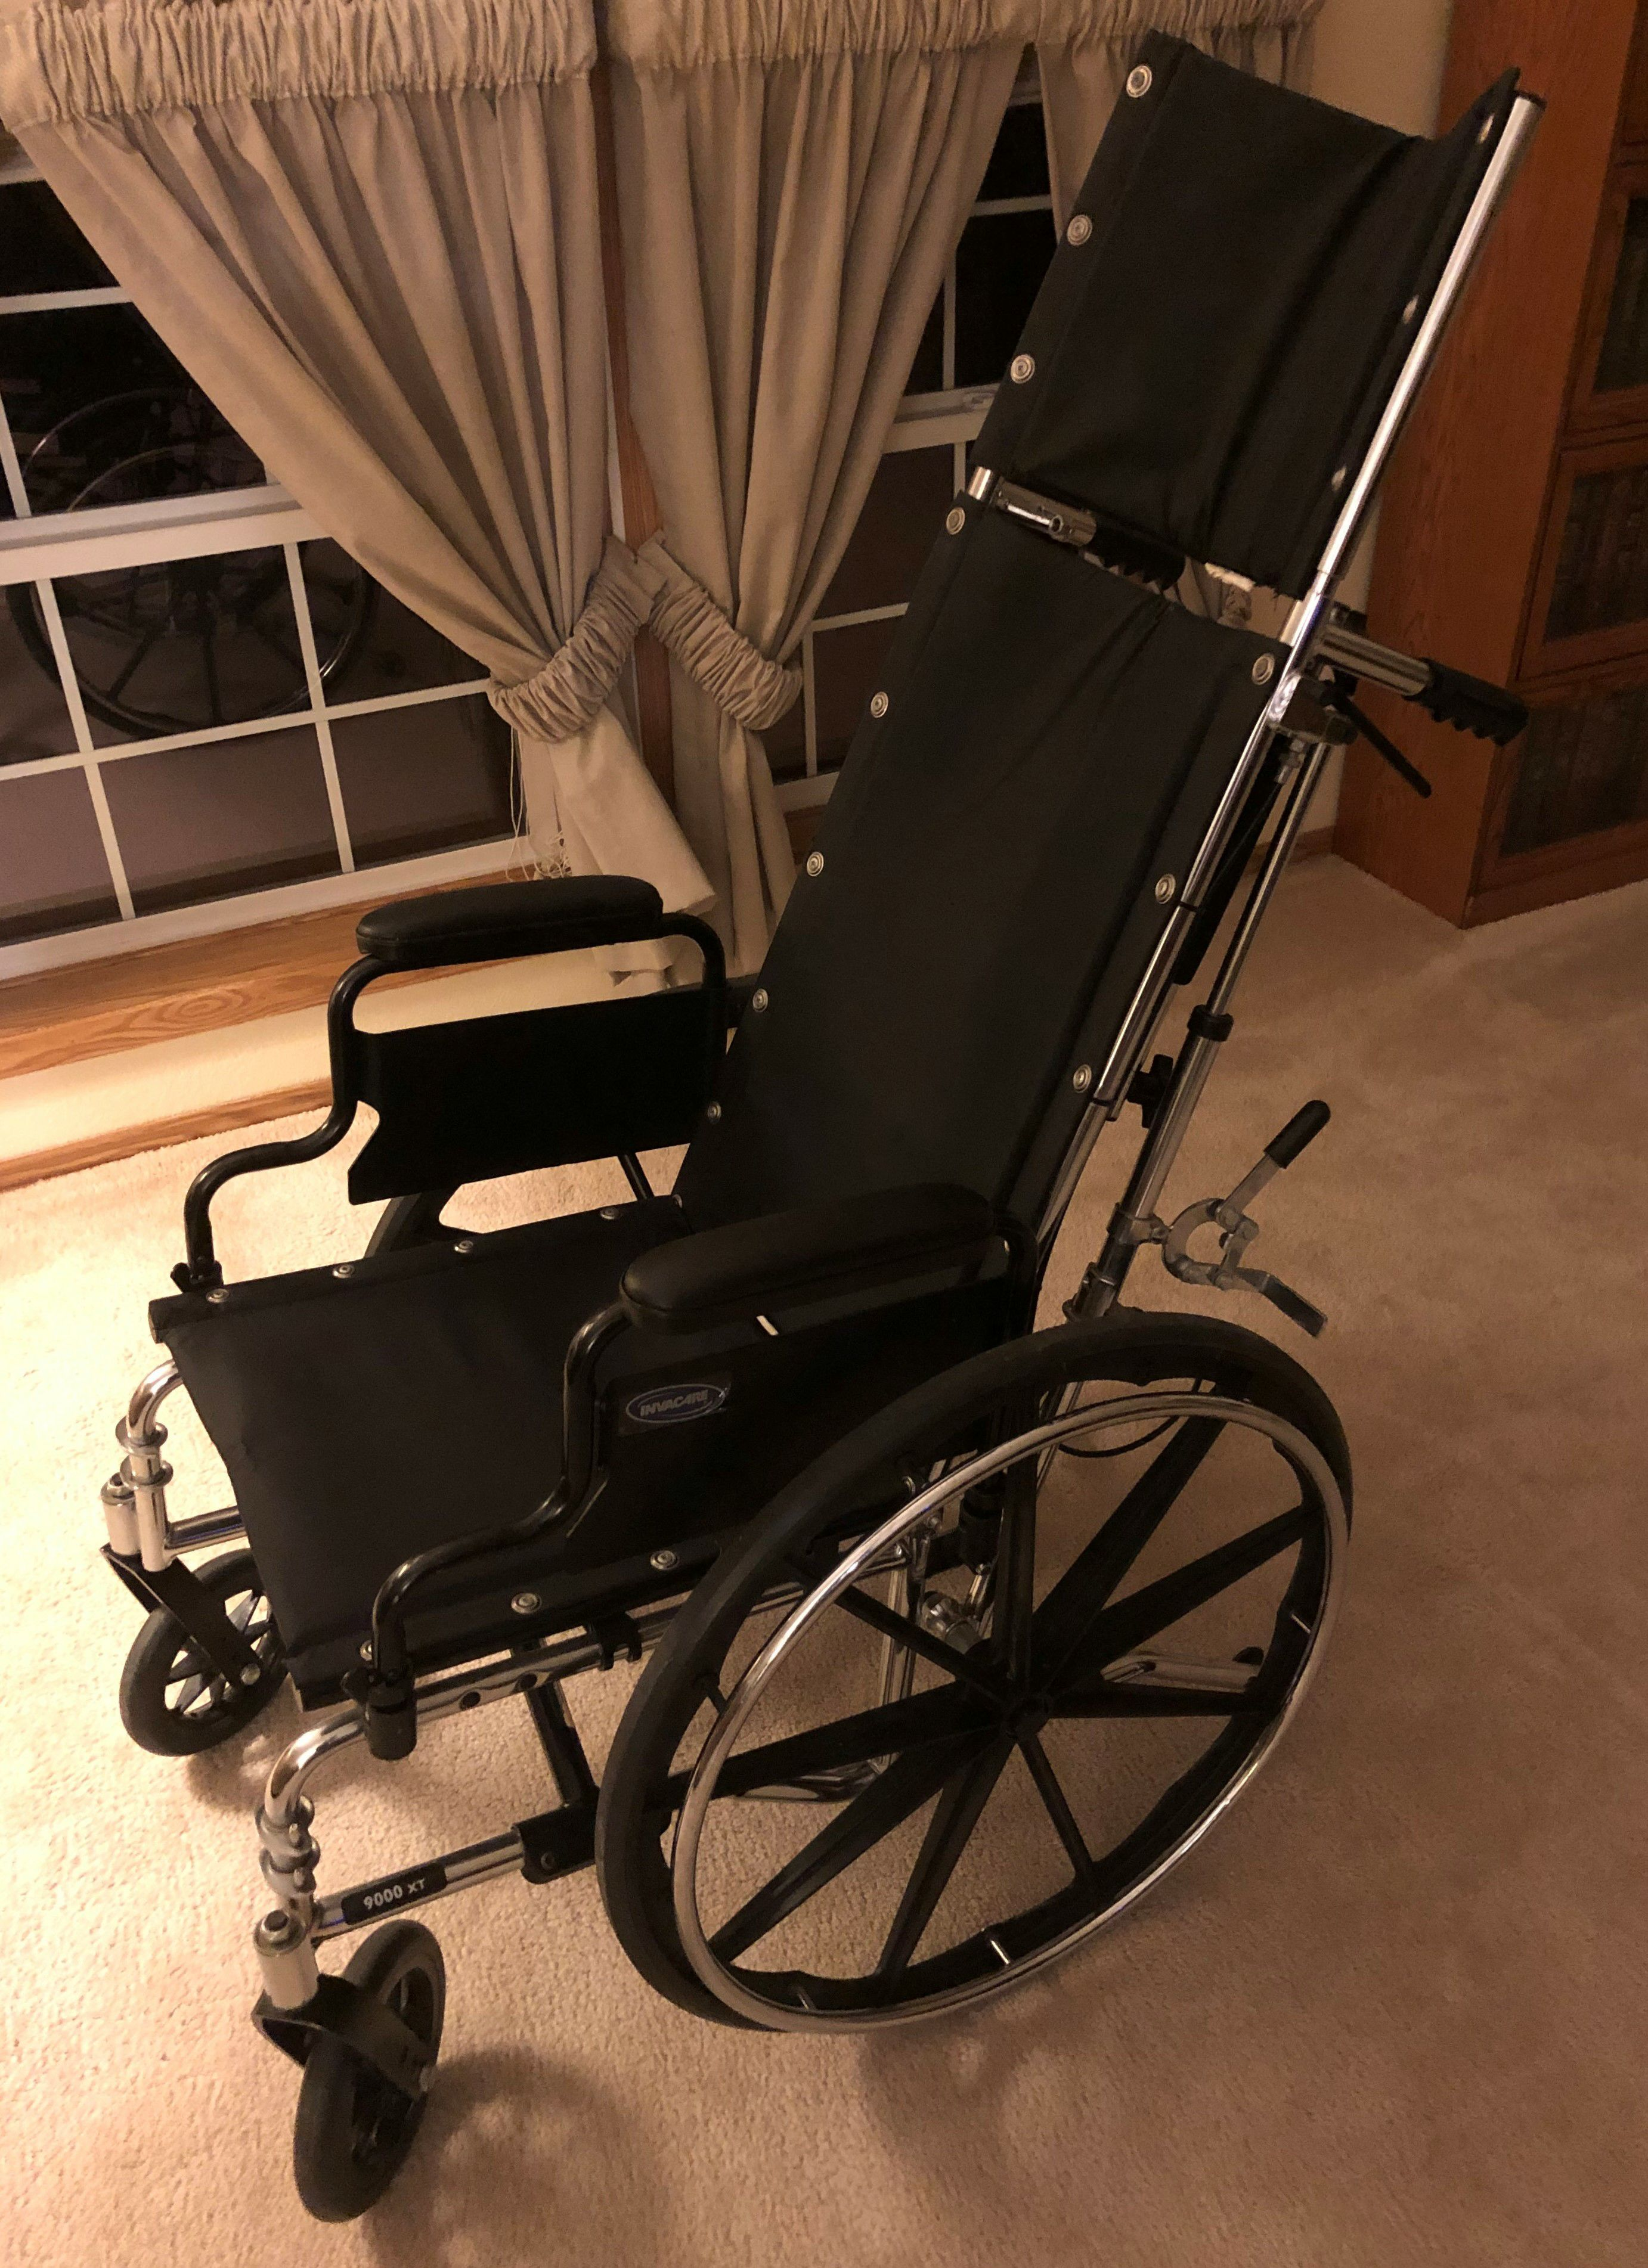 Wheel Chair image 1